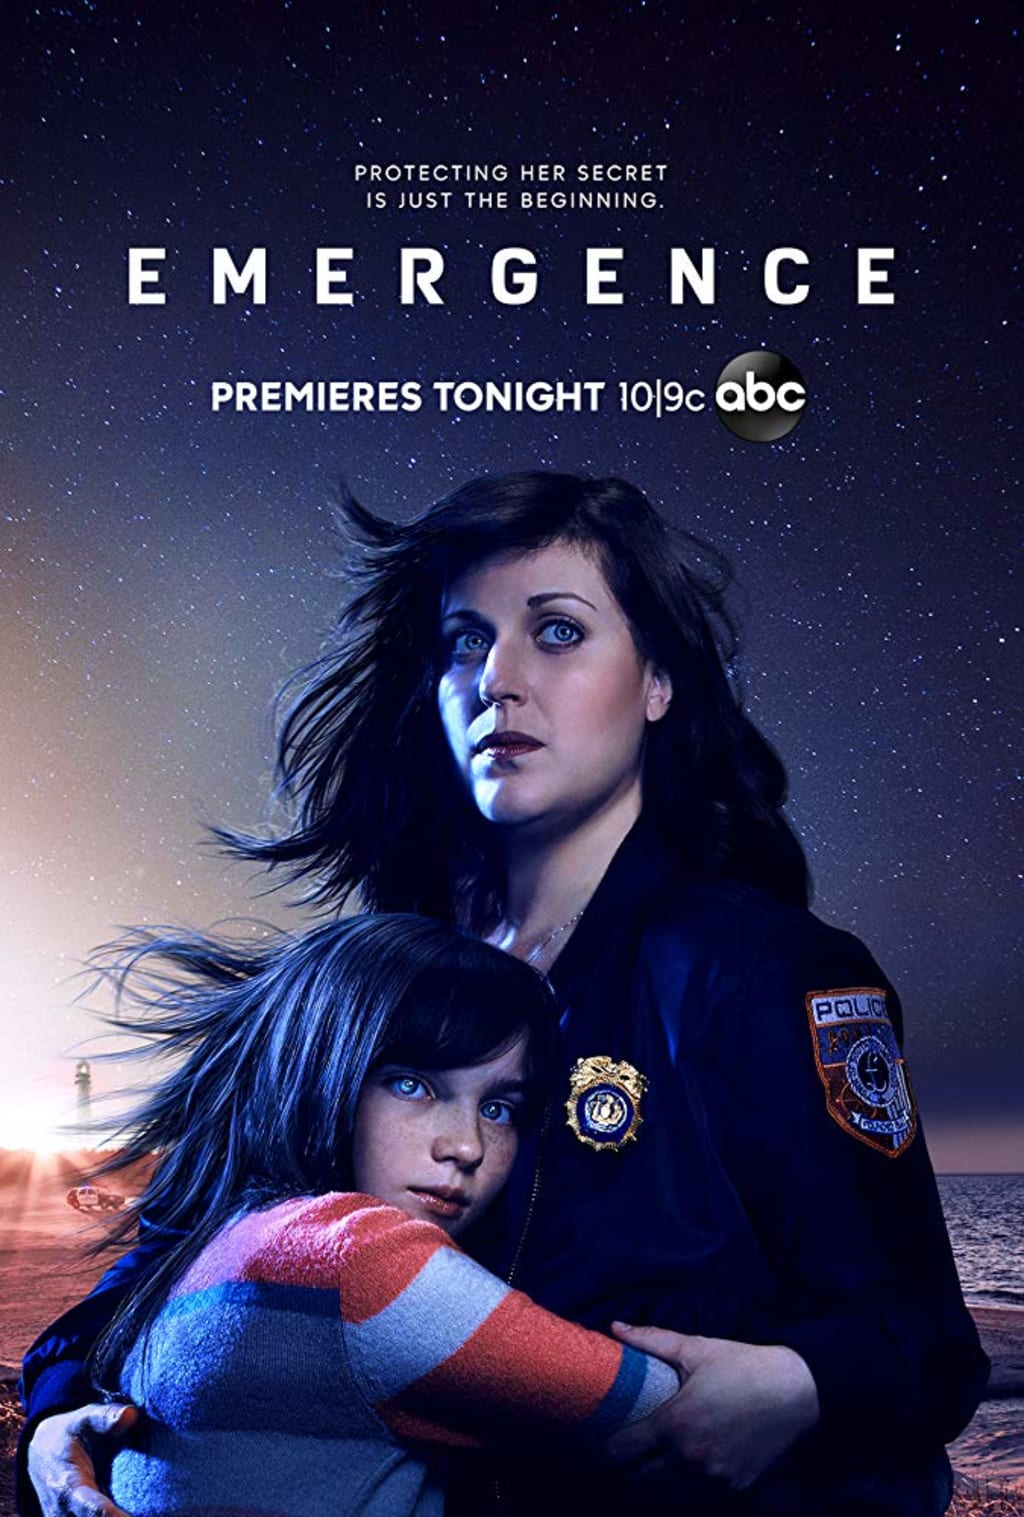 Review of 'Emergence' 1.2